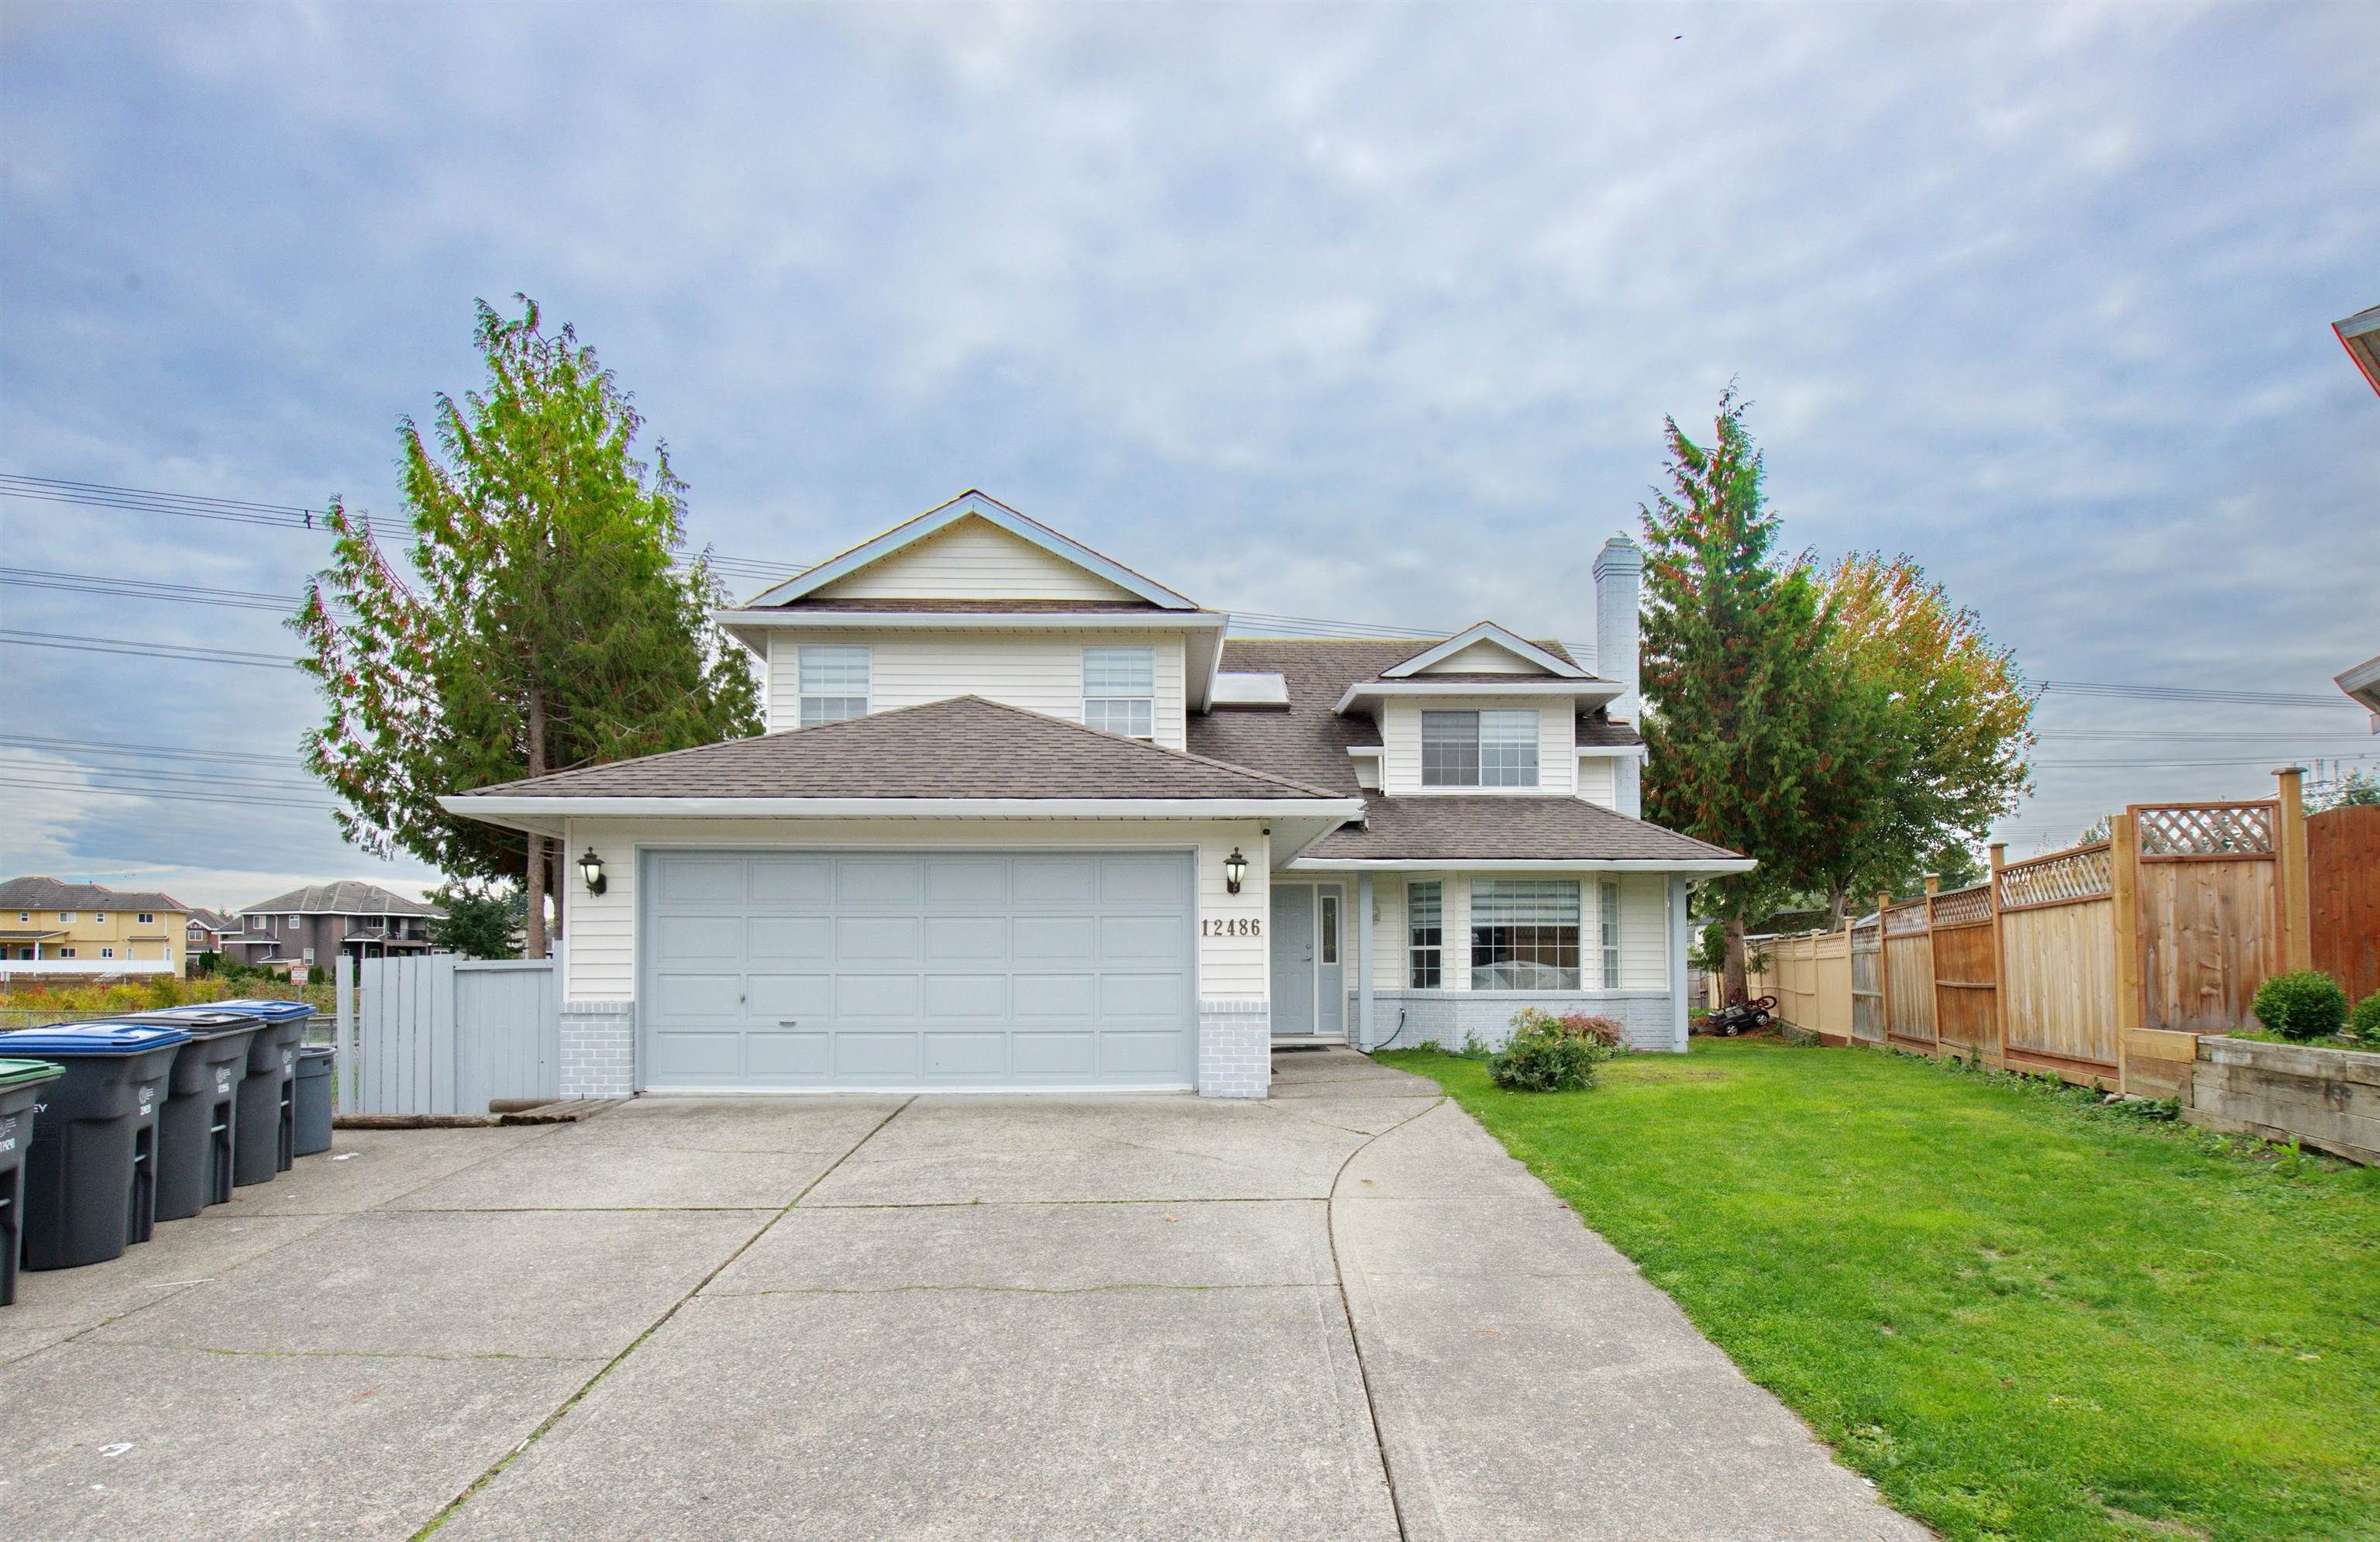 Main Photo: 12486 69 Avenue in Surrey: West Newton House for sale : MLS®# R2624475